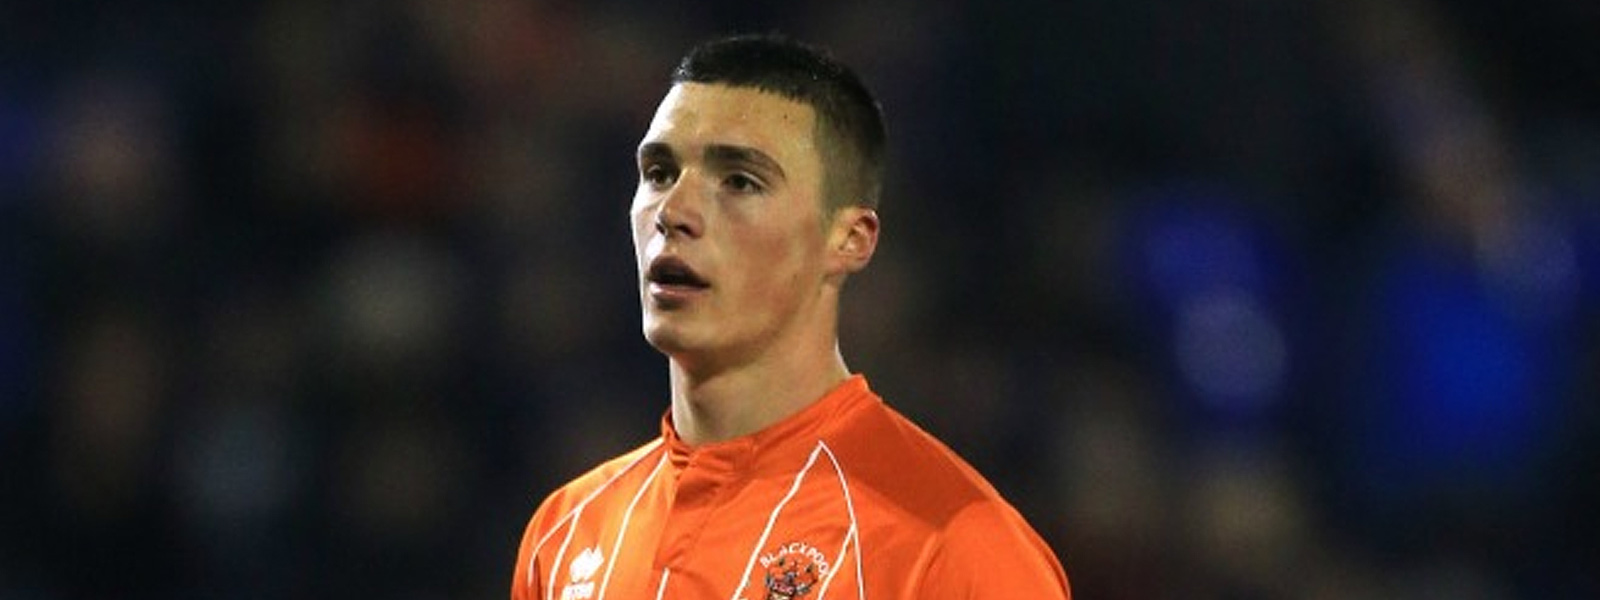 Lloyd-Jones-IFA Sucess Story Luton Town